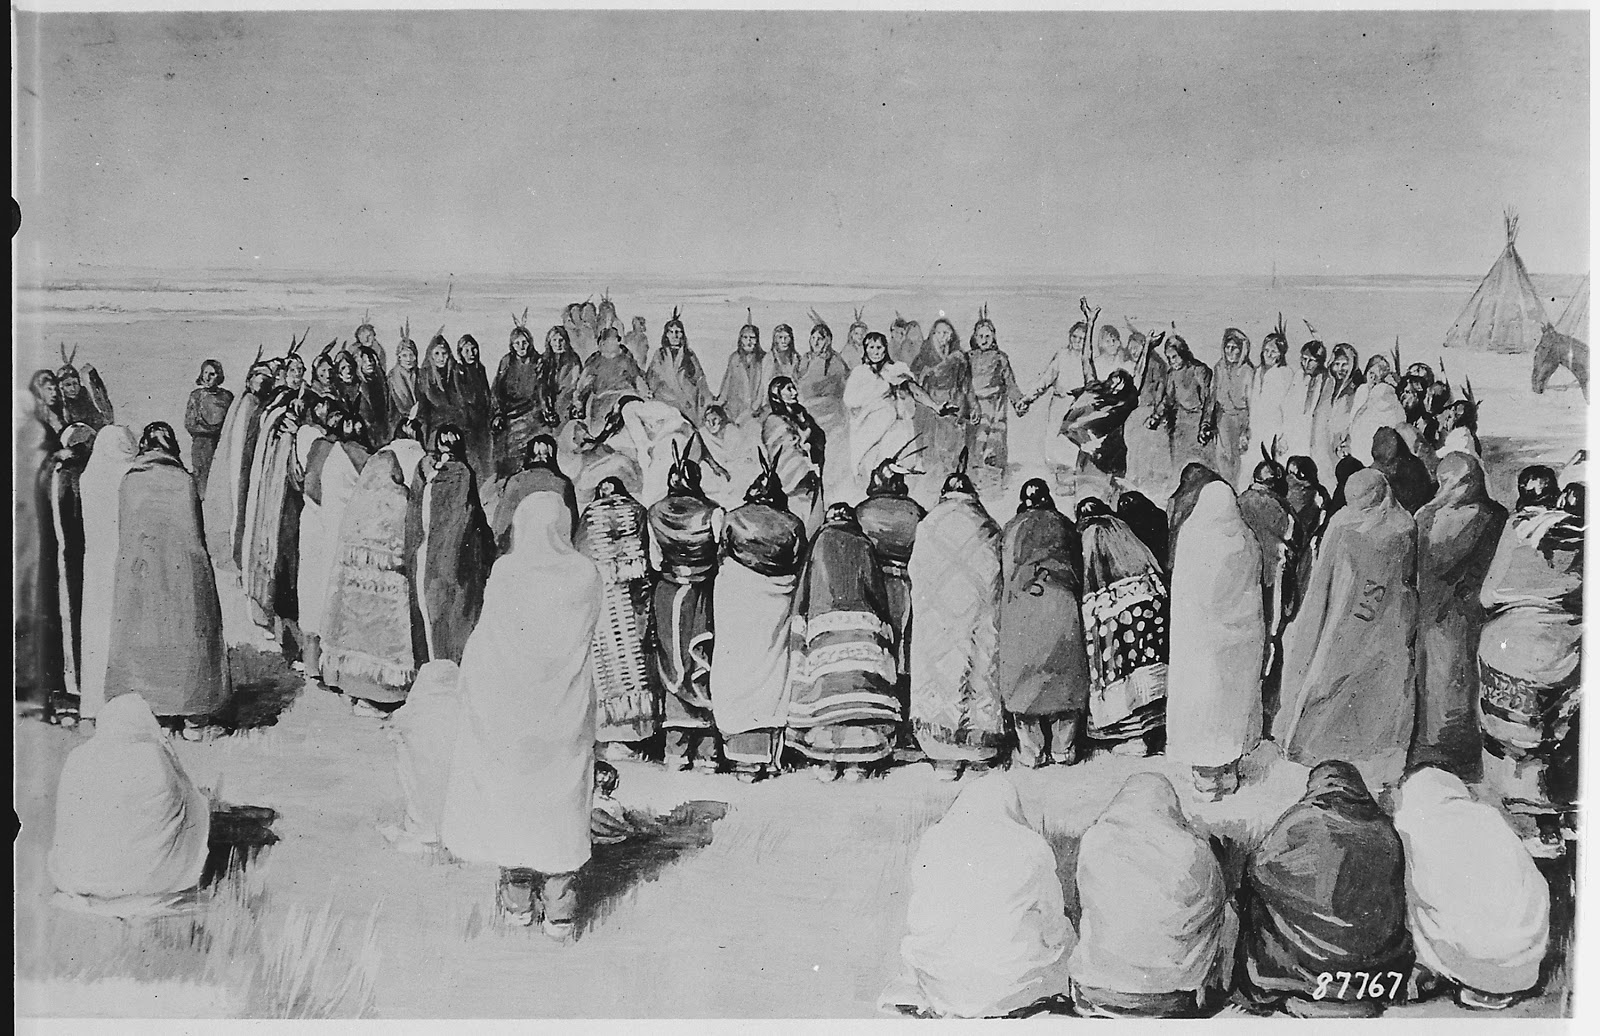 Painting of Arapahos performing the Ghost Dance. Men and women stand in a large circle while some people look on and others dance in the center of the circle.